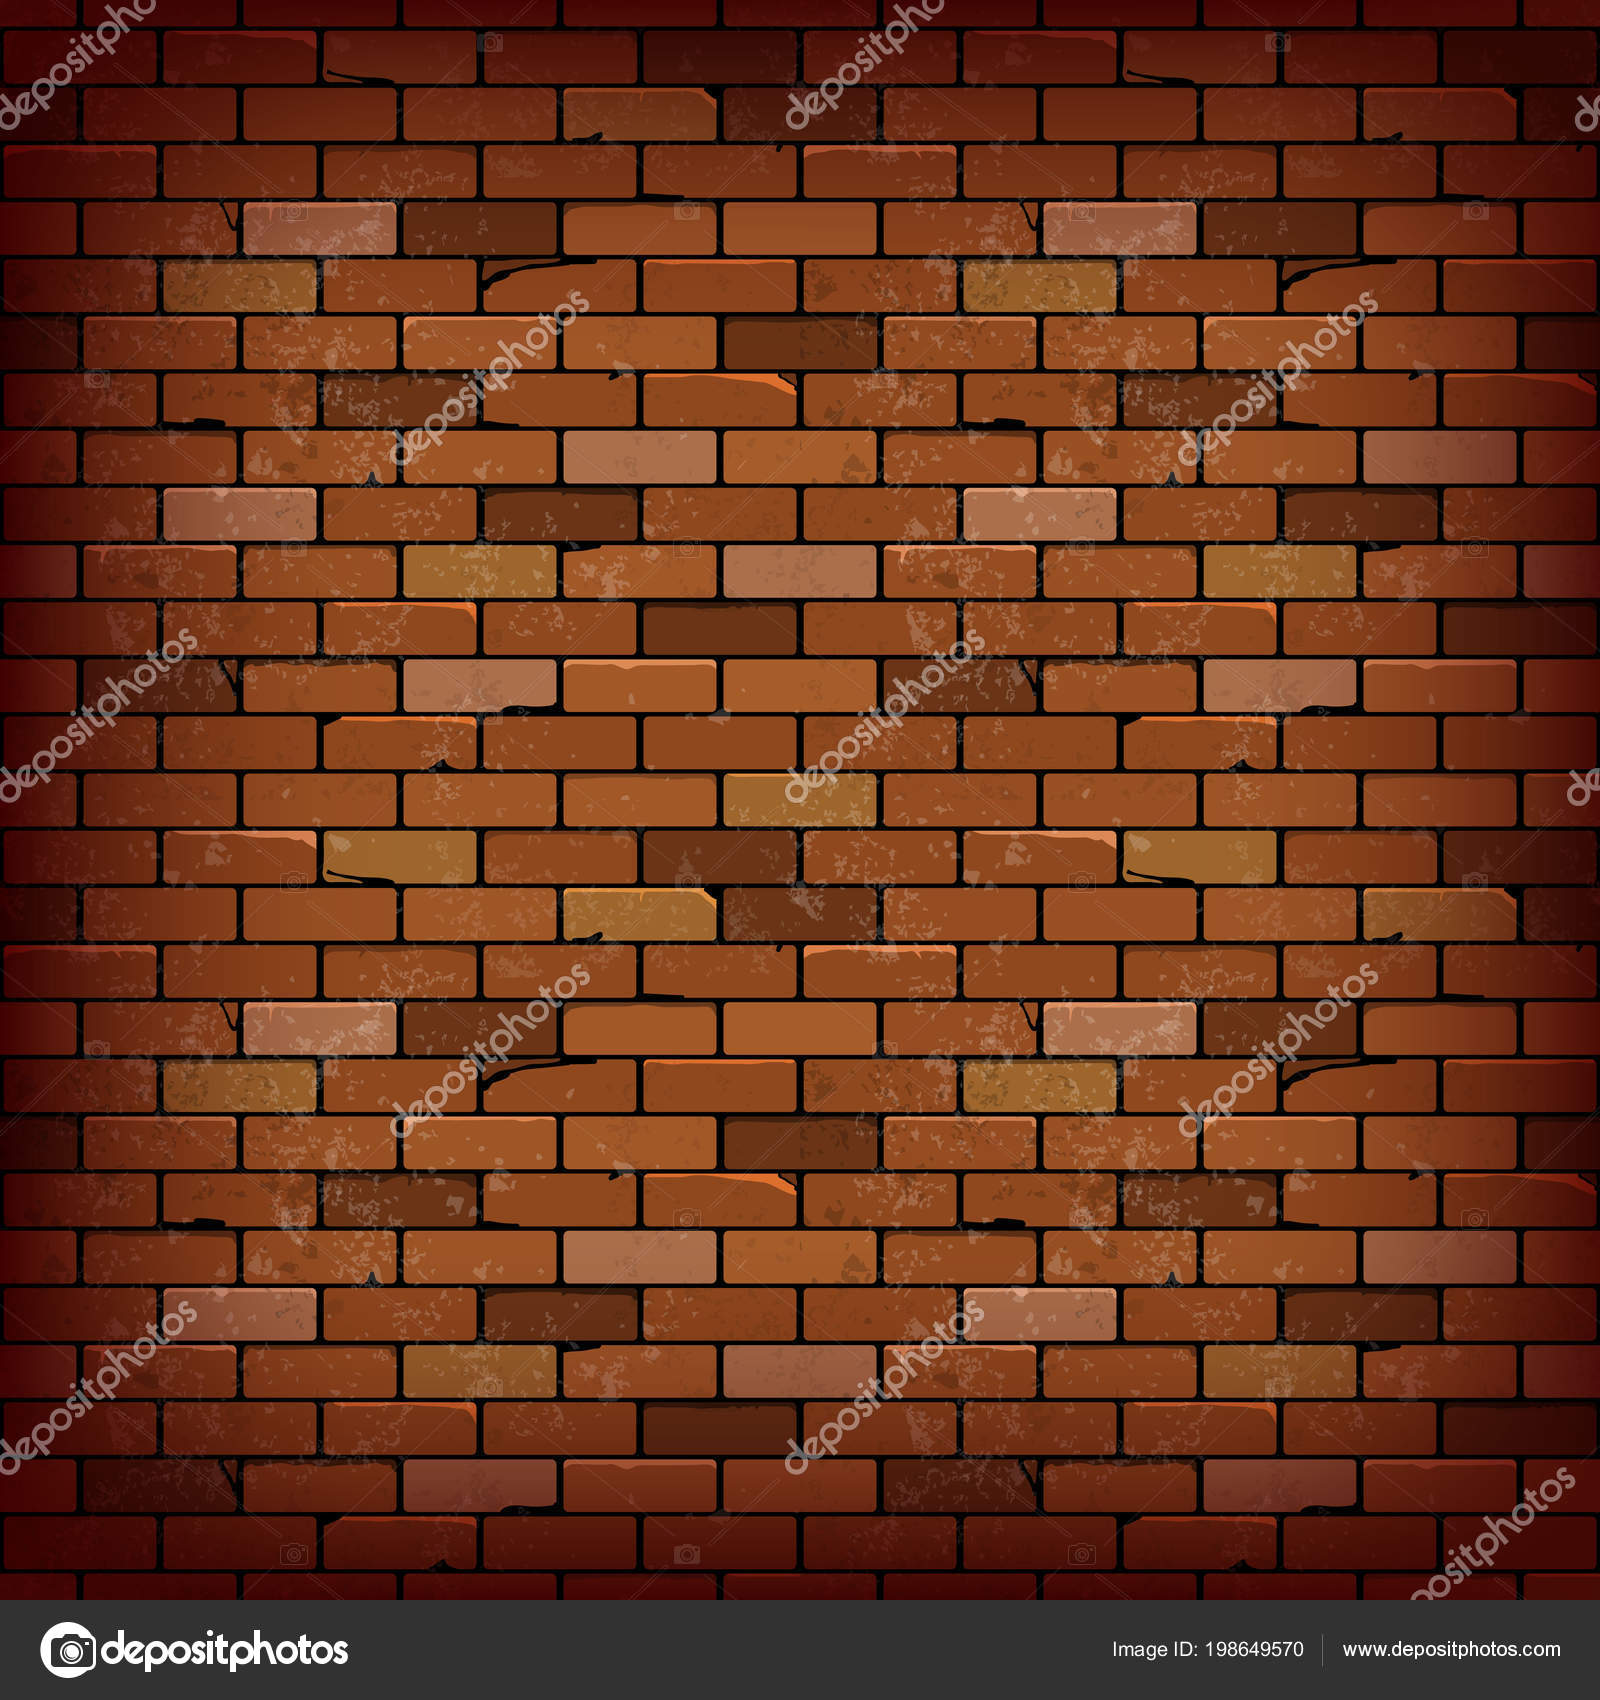 Red Brick Wall Vector Background Illustration